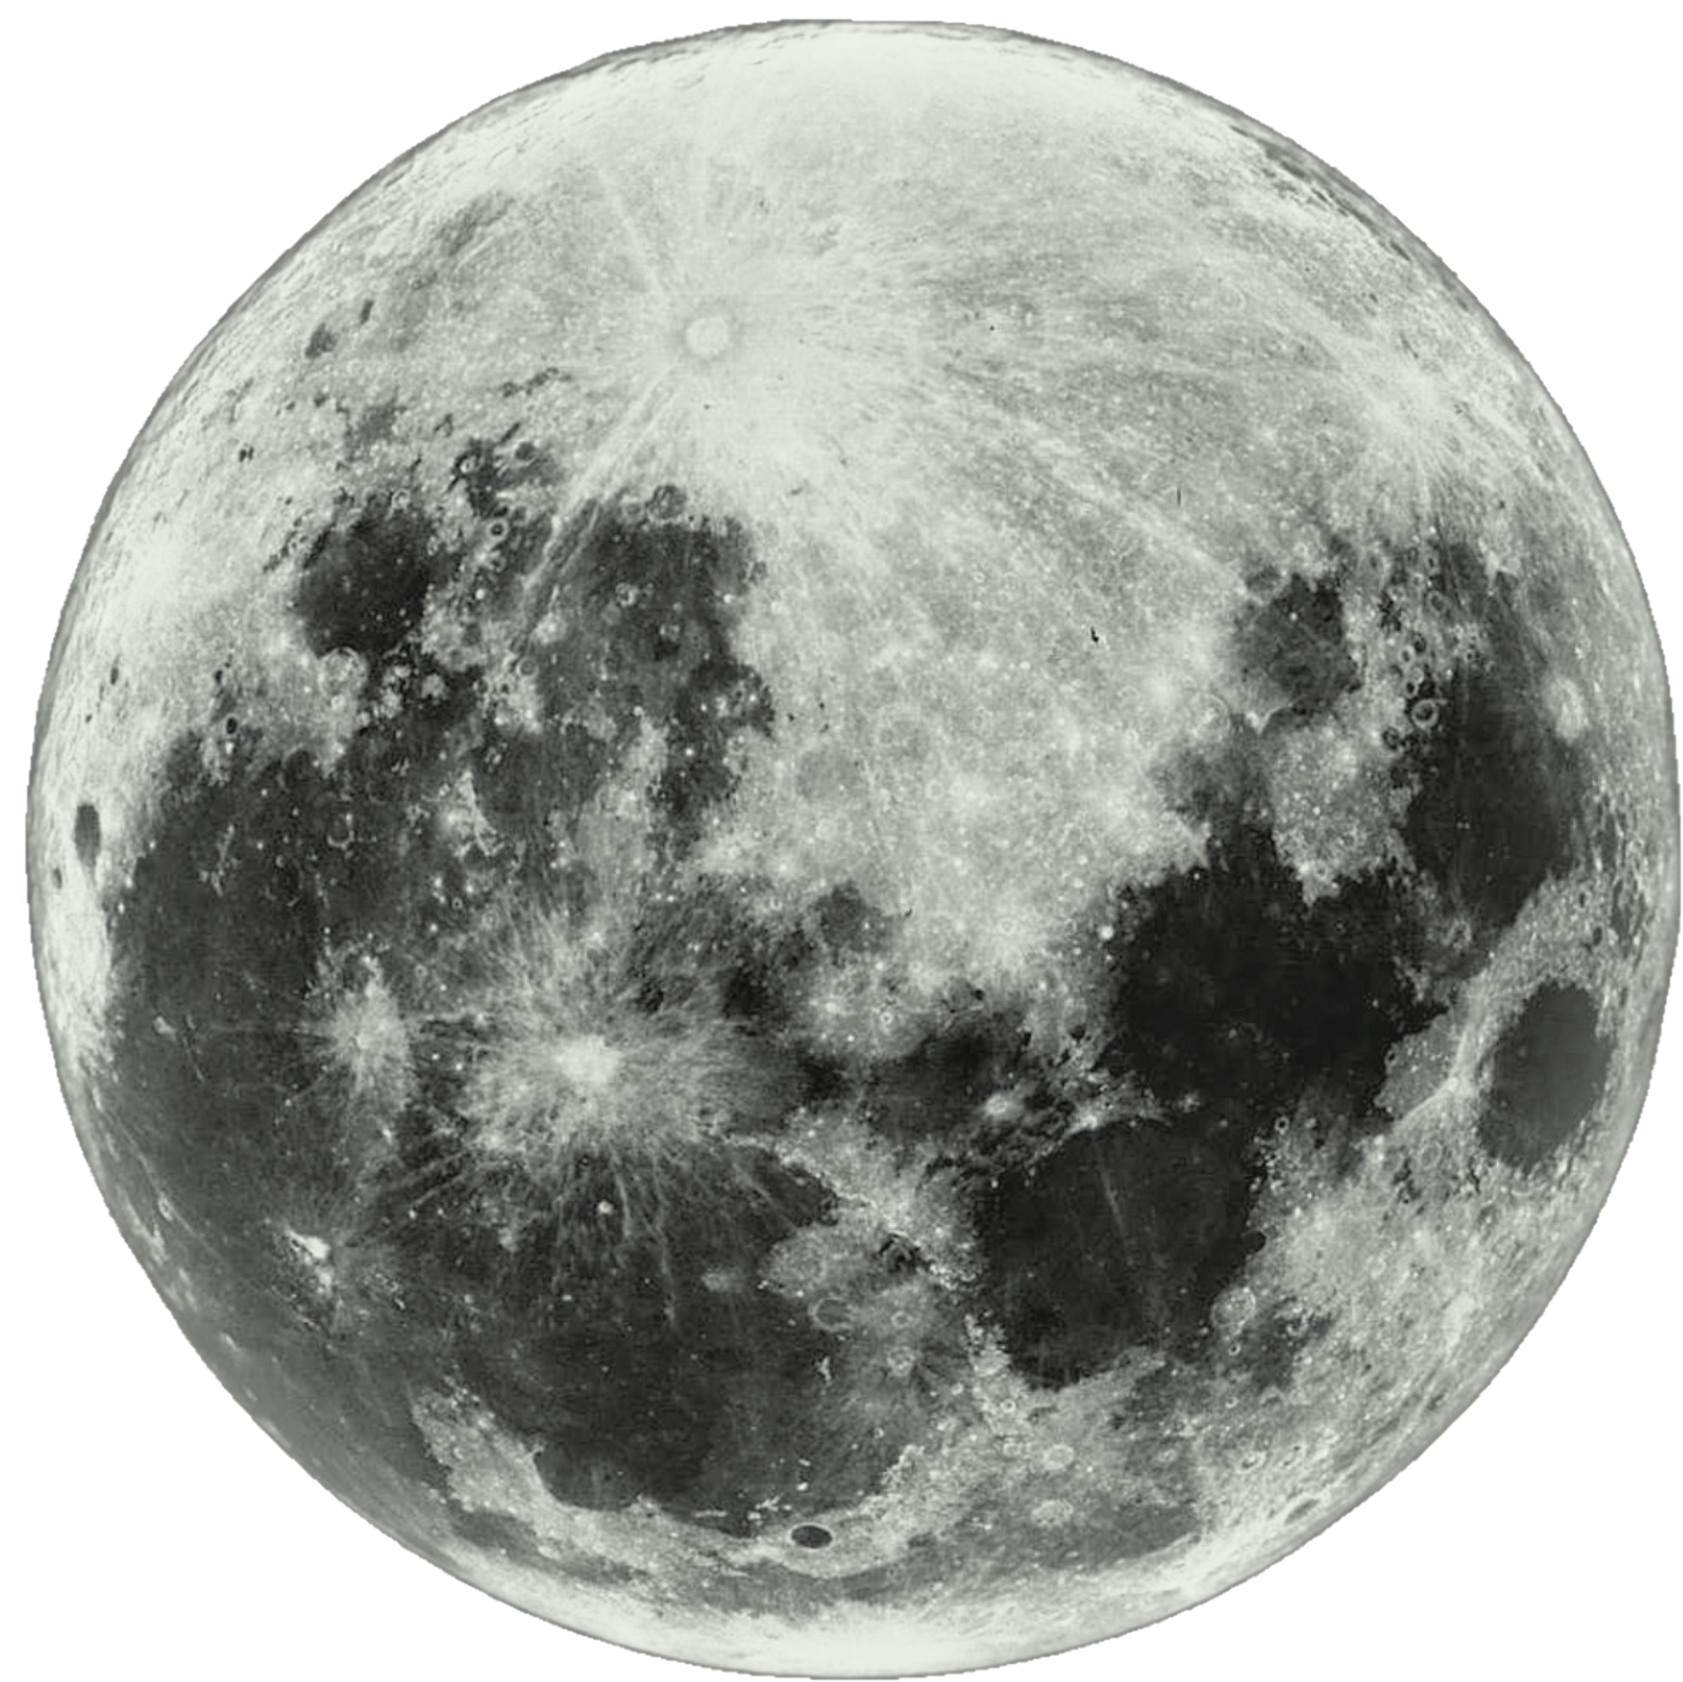 clipart image of moon - photo #45